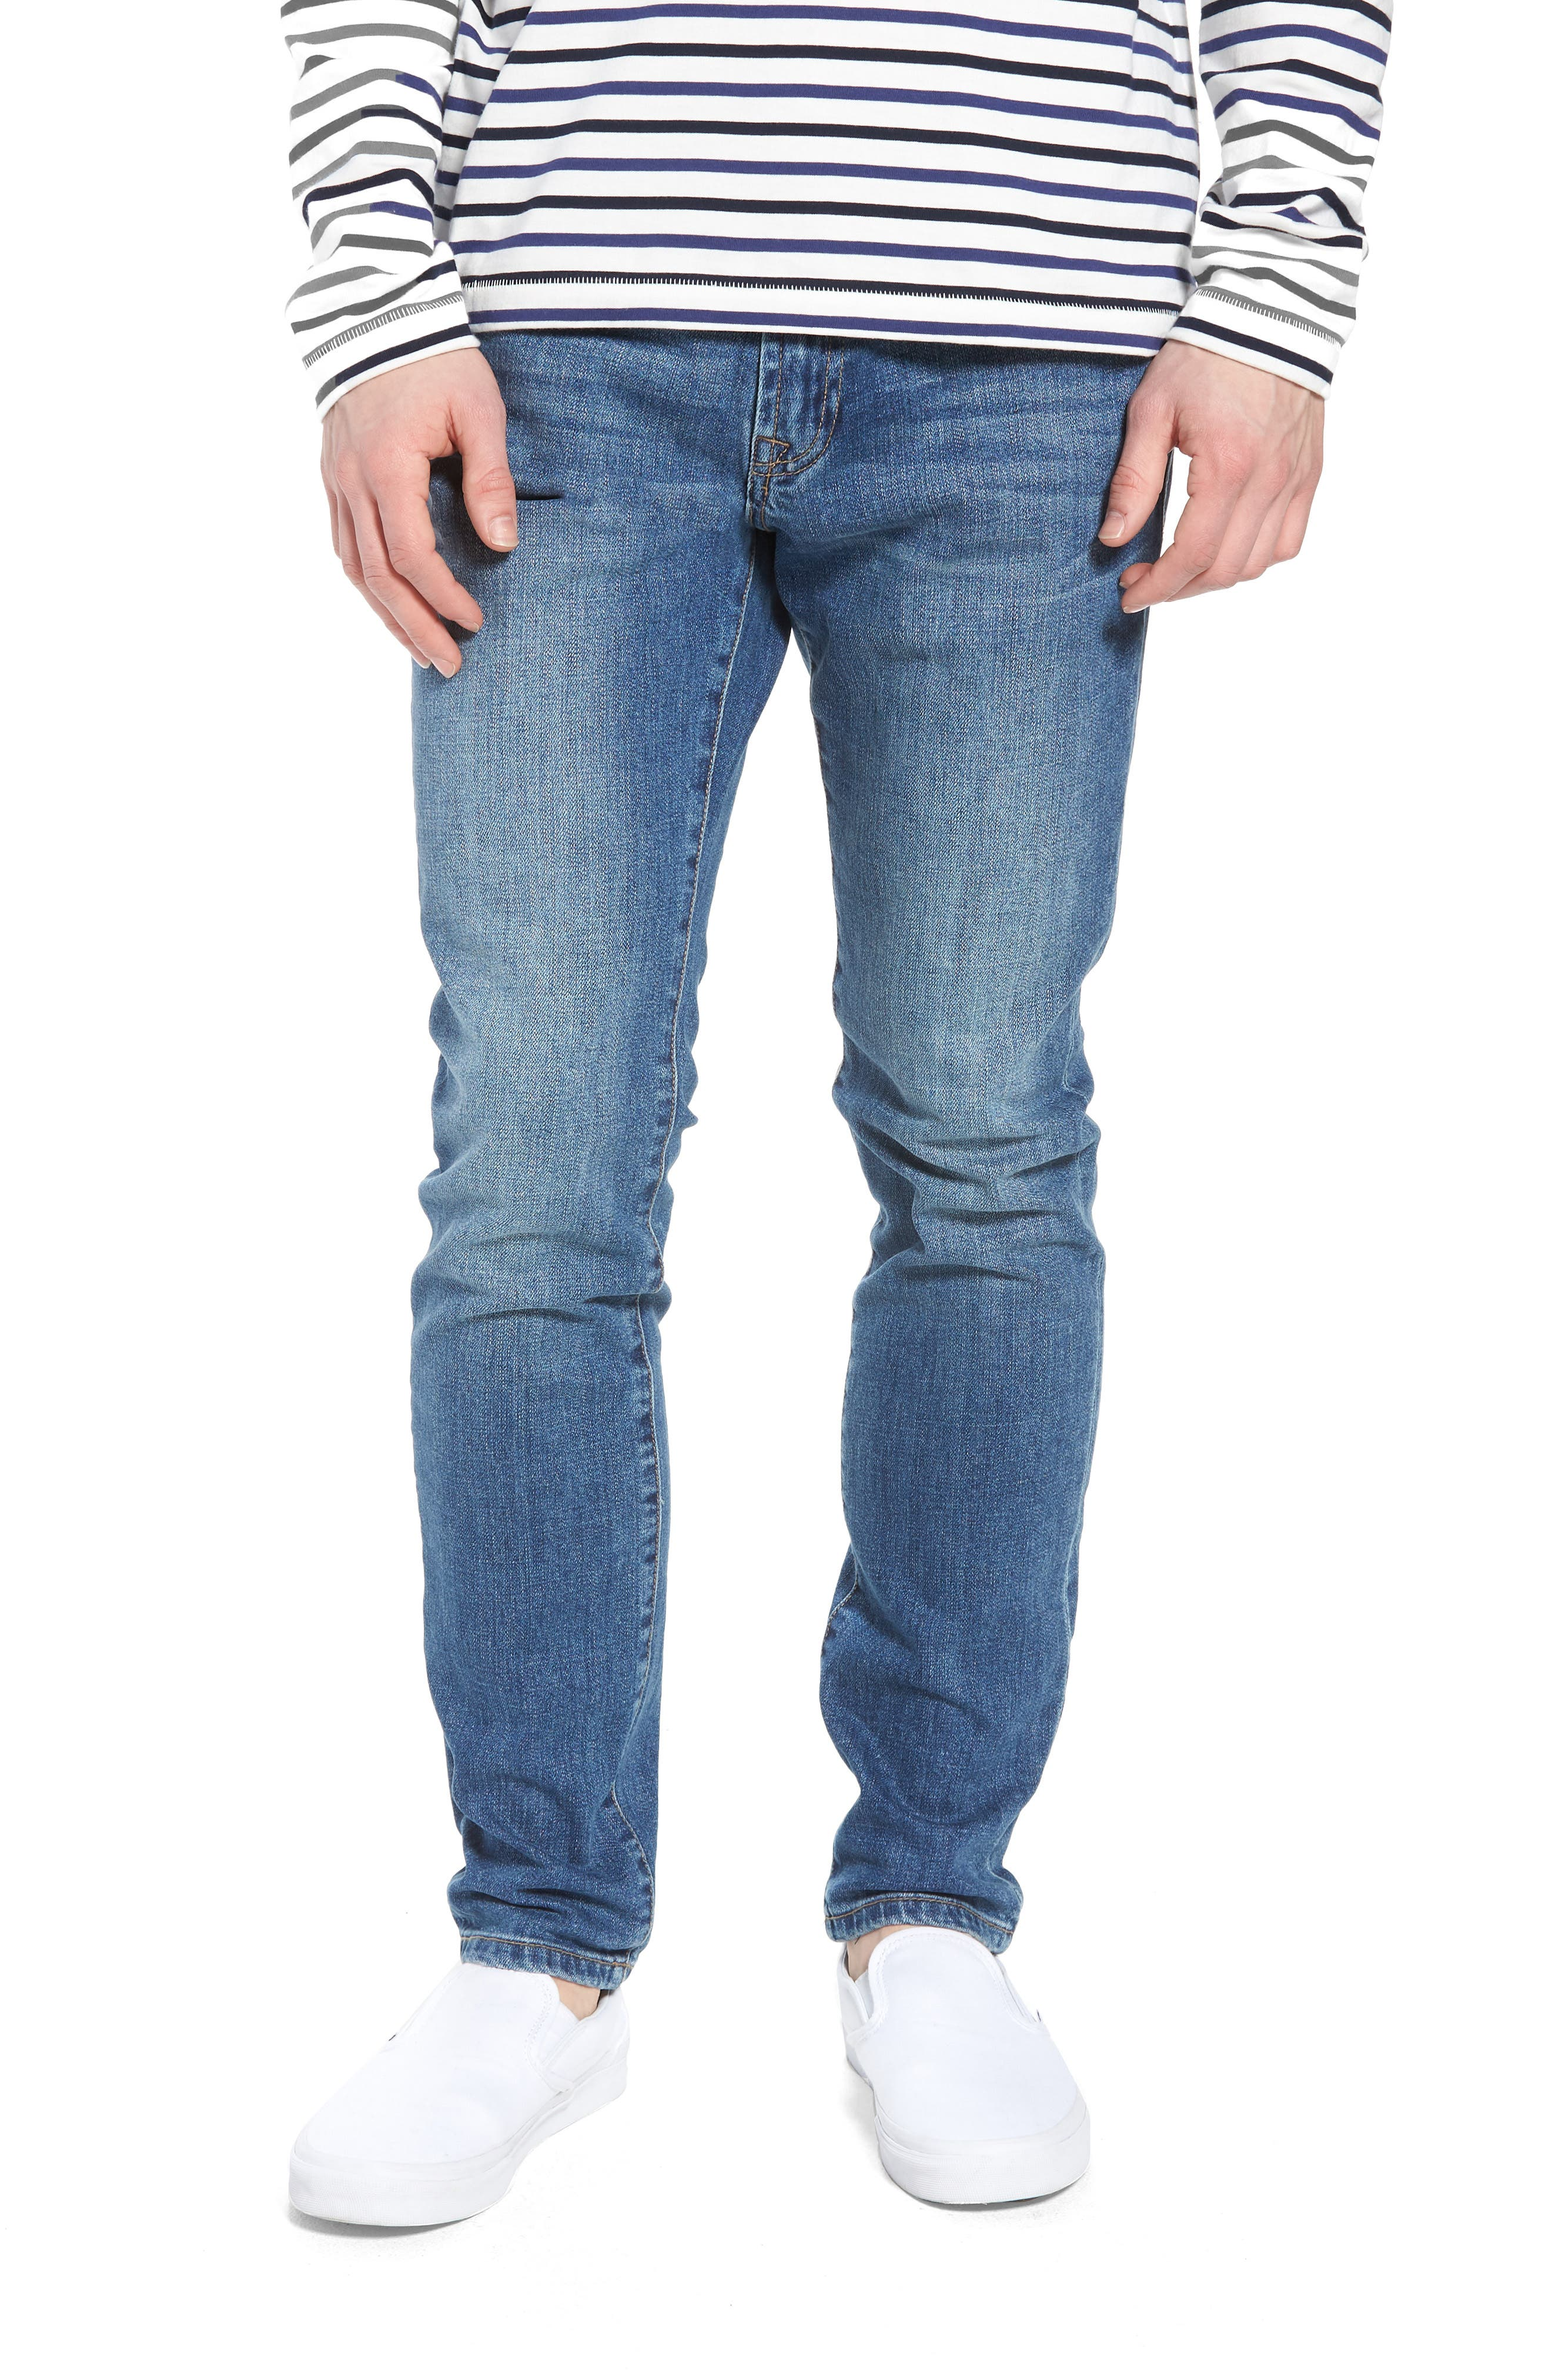 Jeans Co. Bond Skinny Fit Jeans,                             Main thumbnail 1, color,                             401